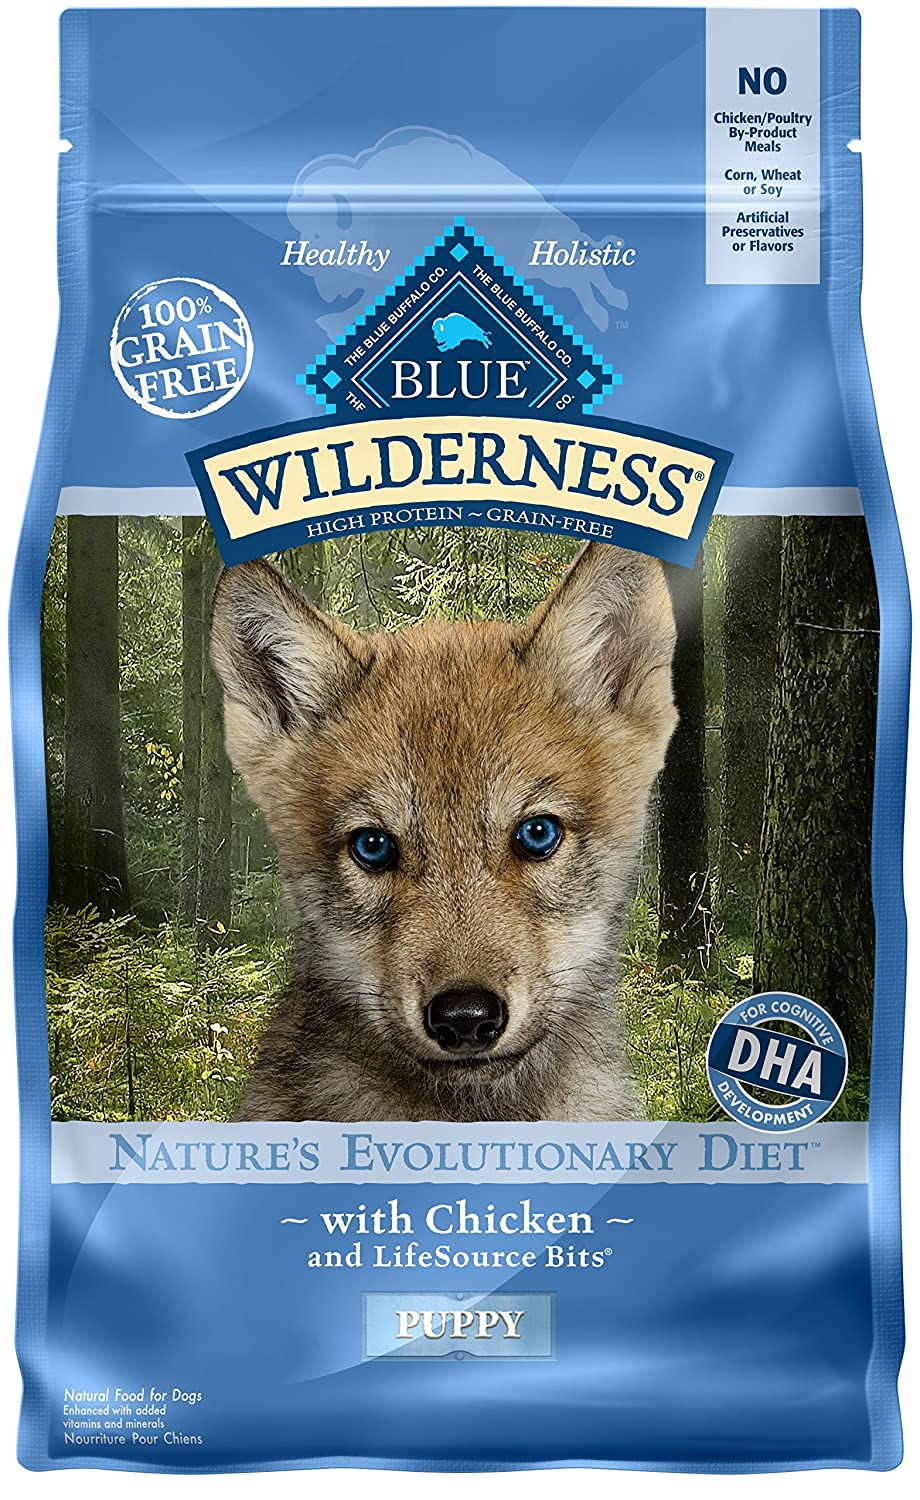 BLUE Wilderness Grain Free Puppy Food